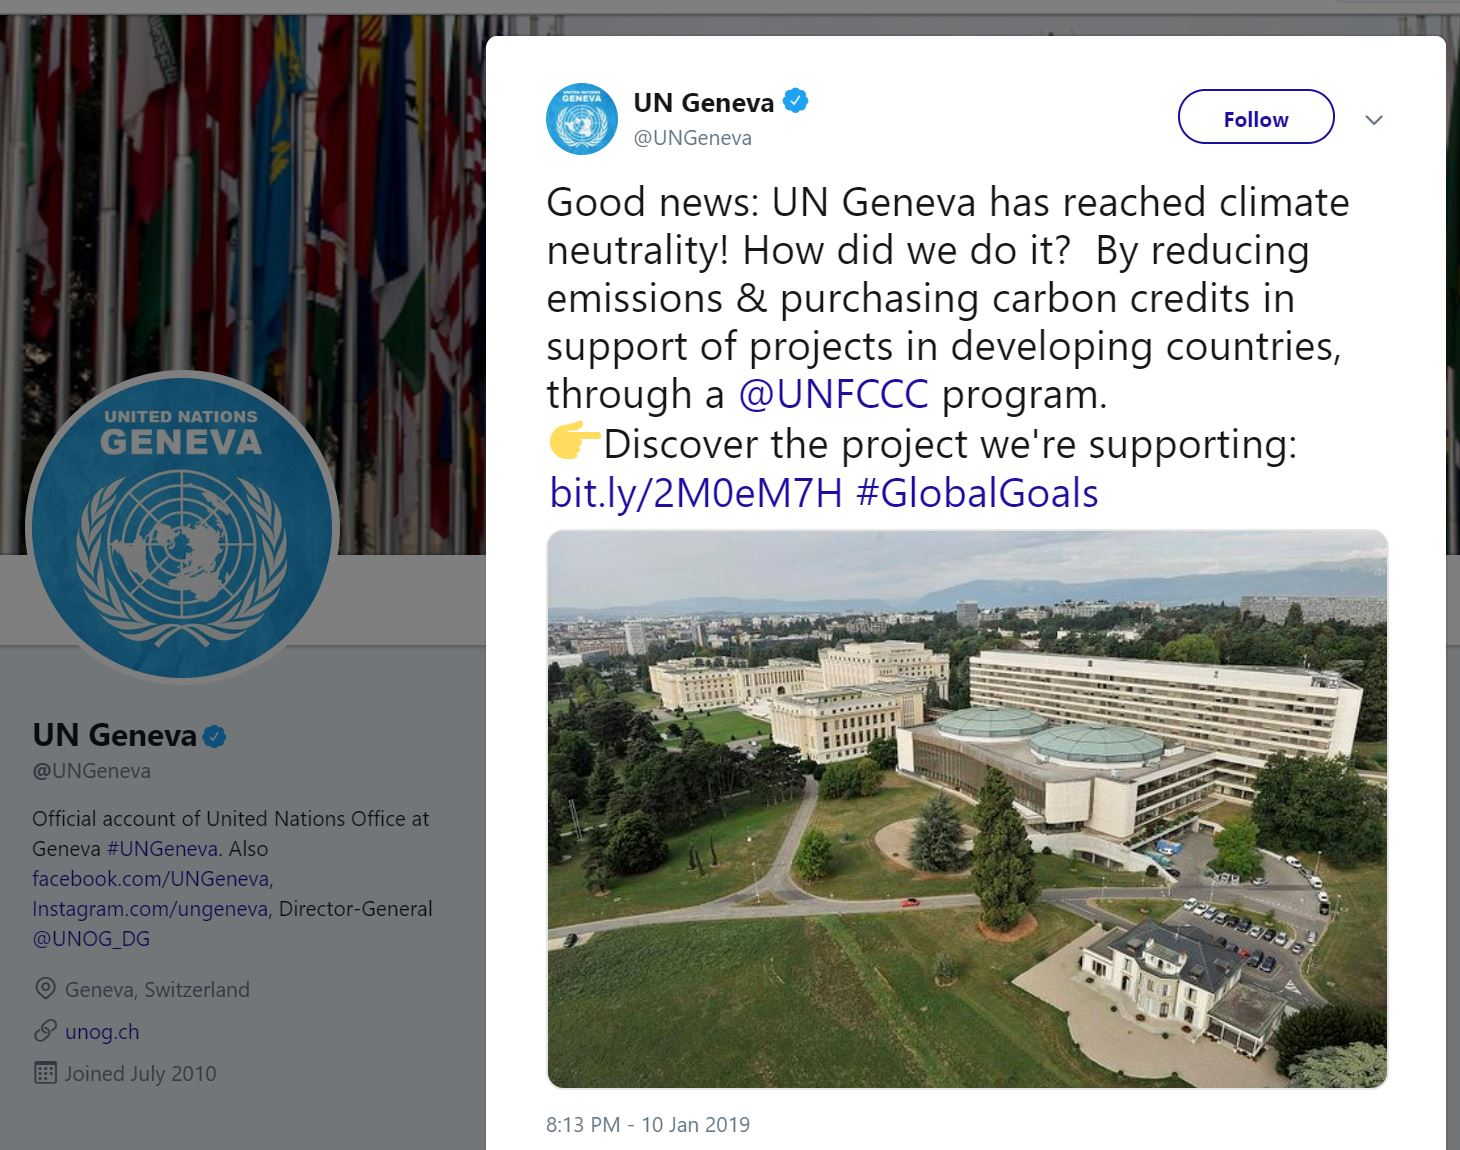 UN Geneva is climate neutral